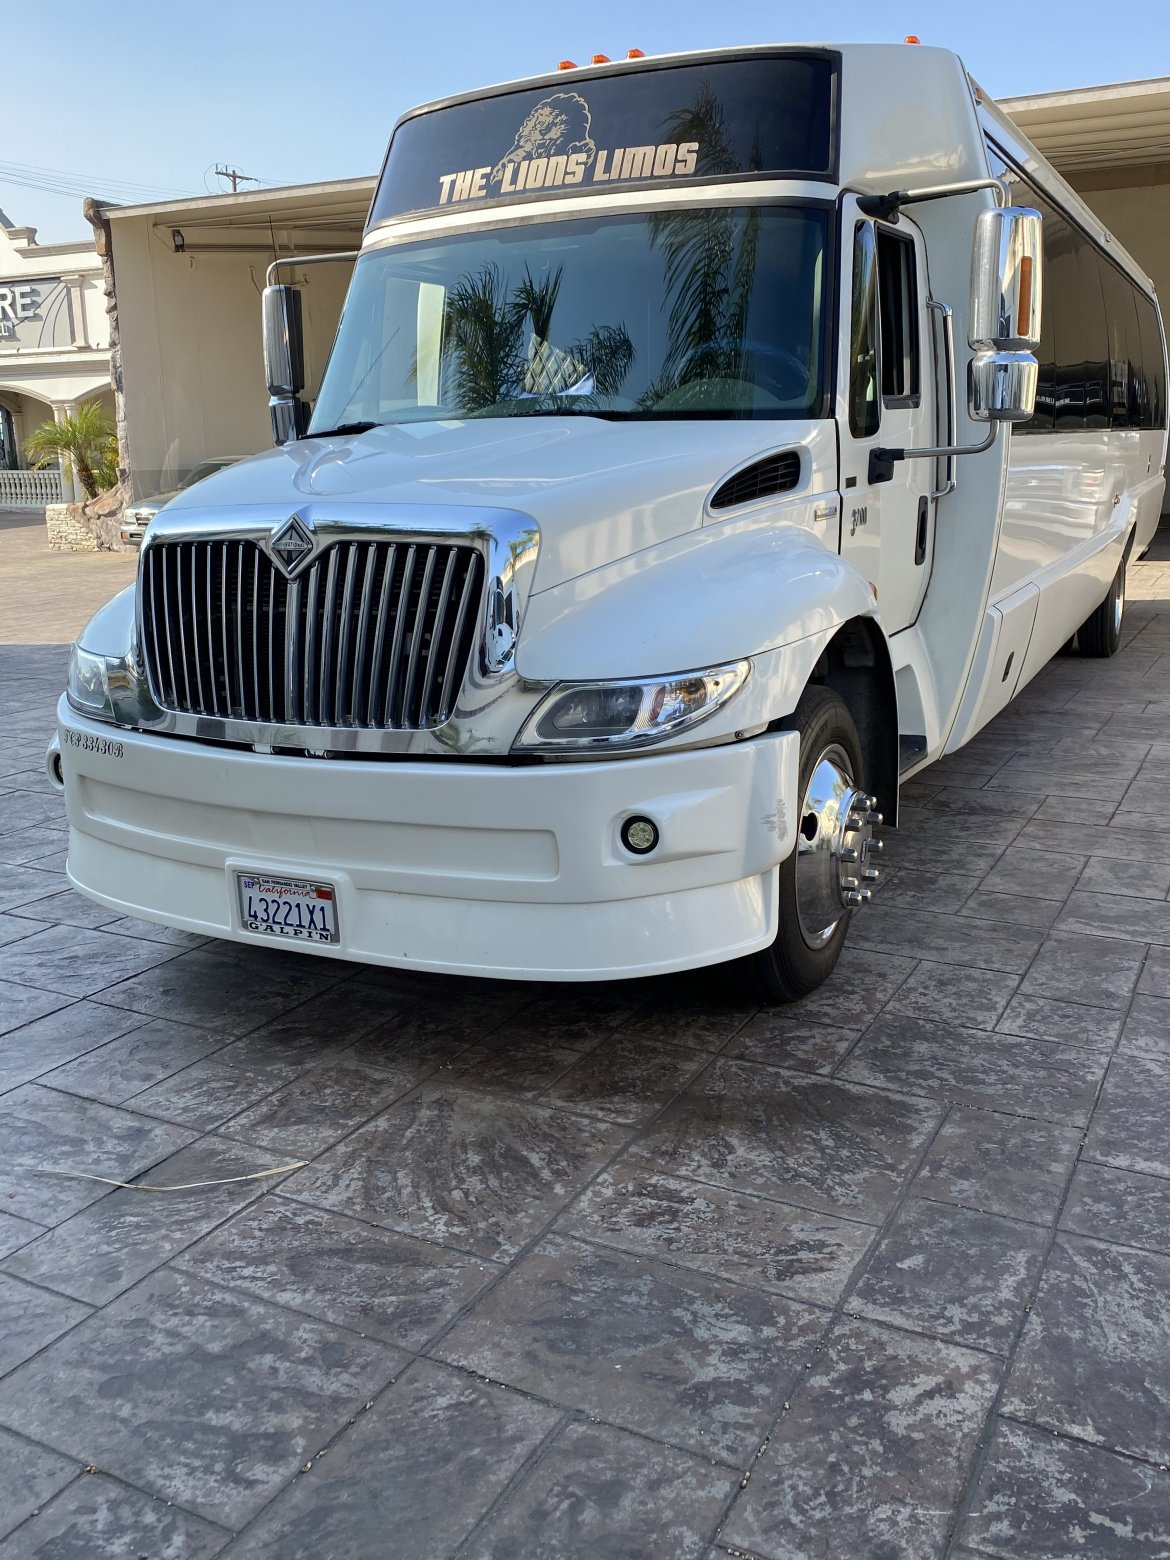 Limo Bus for sale: 2009 International 3200 by LIMOS BY MOONLIGHT